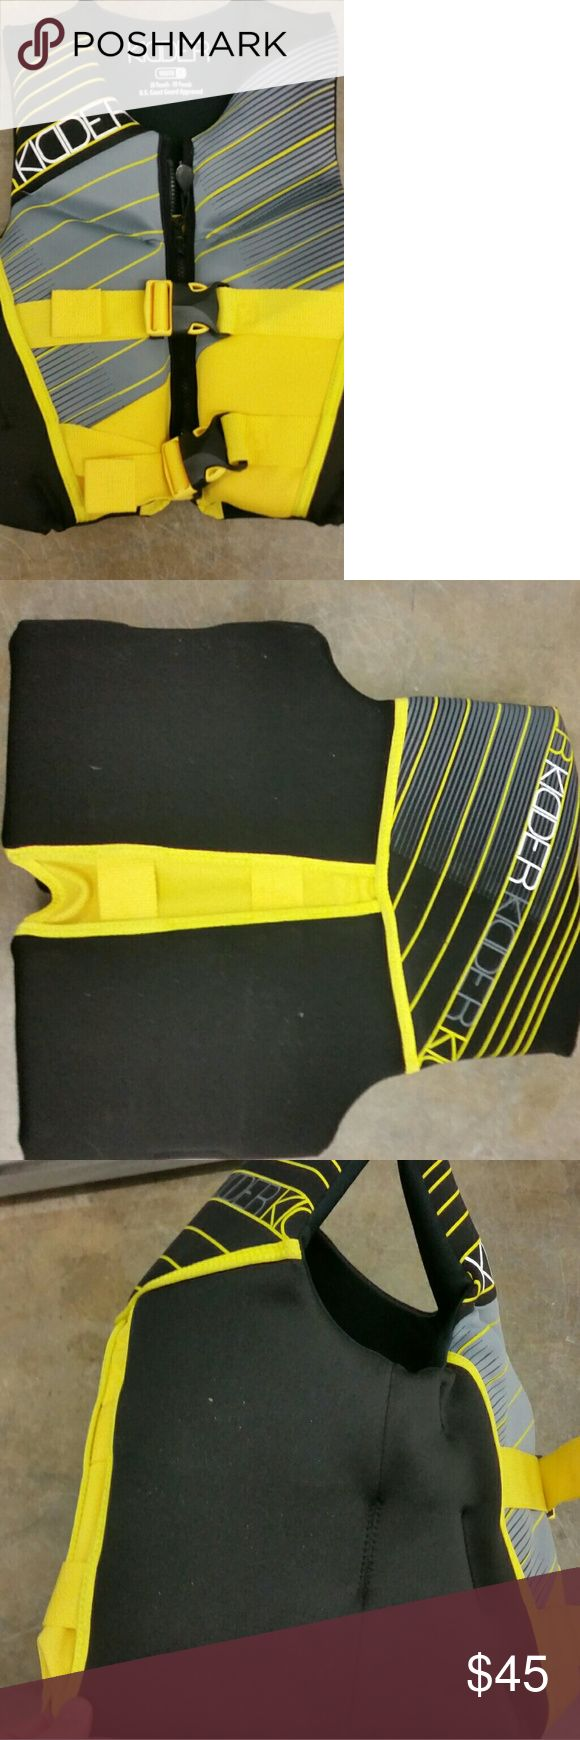 Neoprene Life Jacket Youth Size M / L 50 to 90 lbs Neoprene Life Jacket Youth Size M / L 50 to 90 lbs Kidder Swim